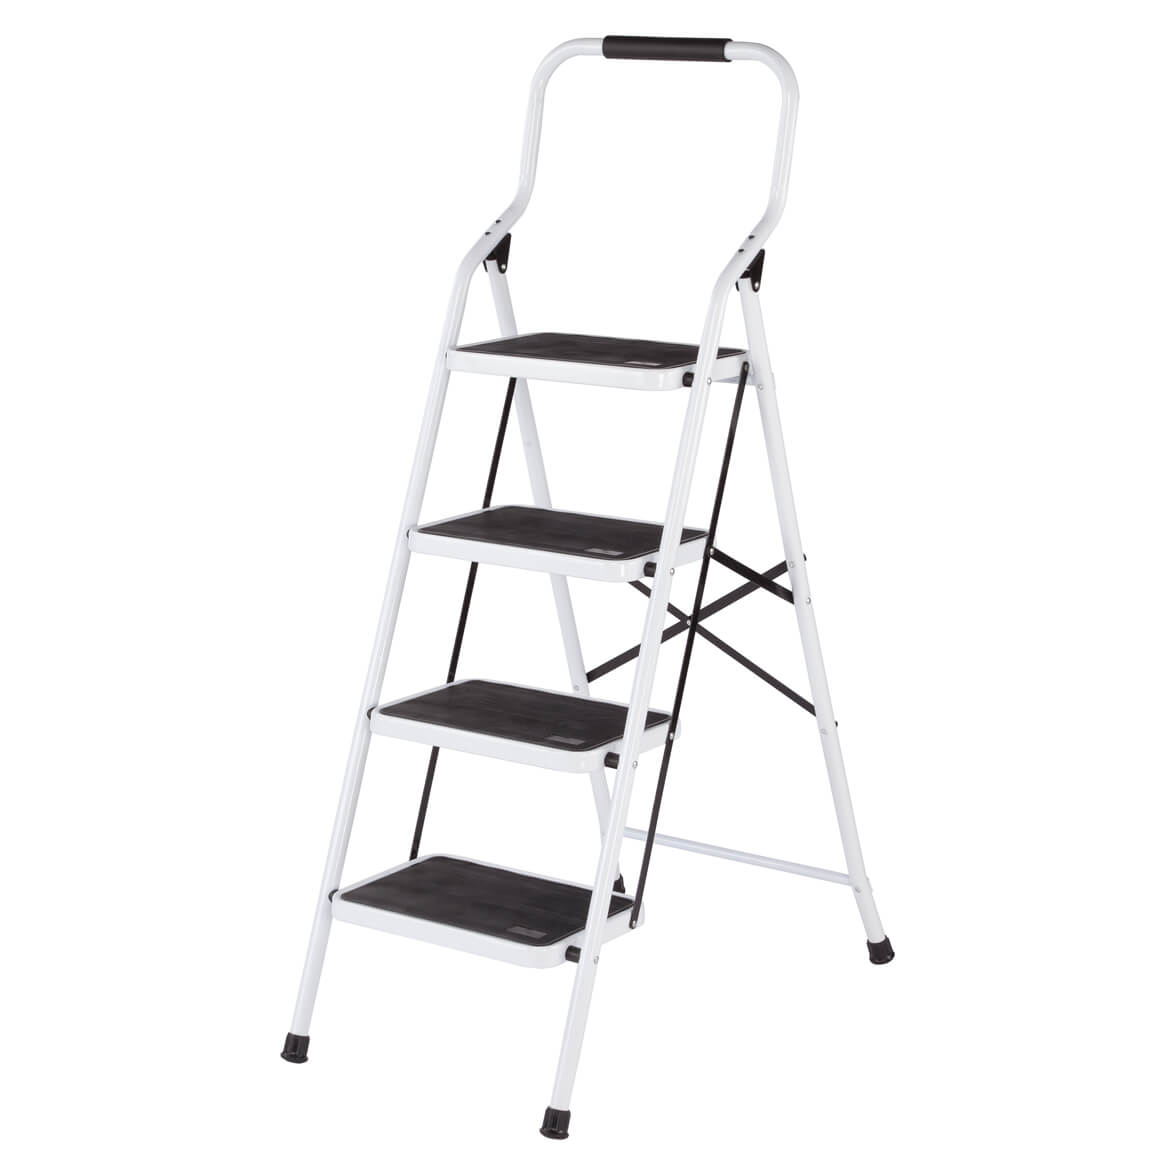 Folding Four Step Ladder By Livingsure